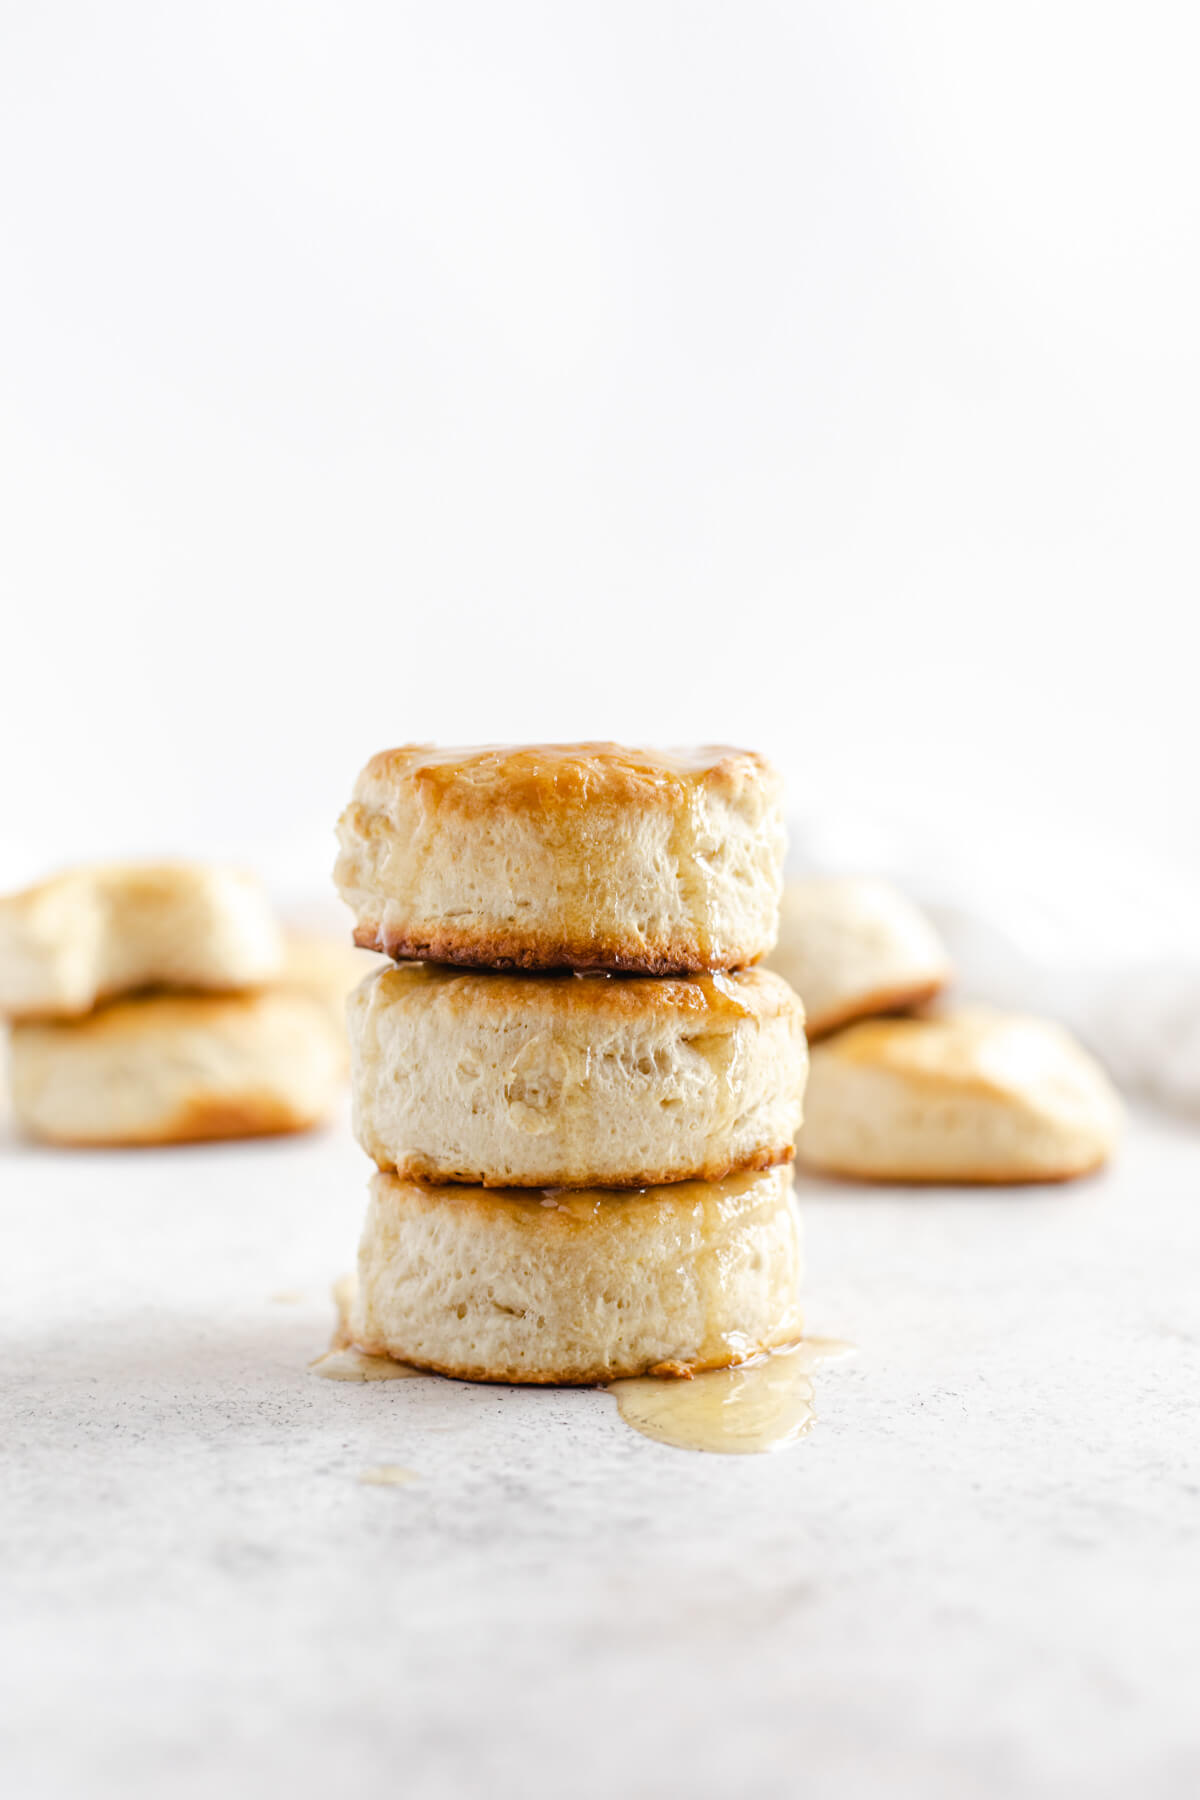 three biscuits stacked on top of each other with honey butter dripping down